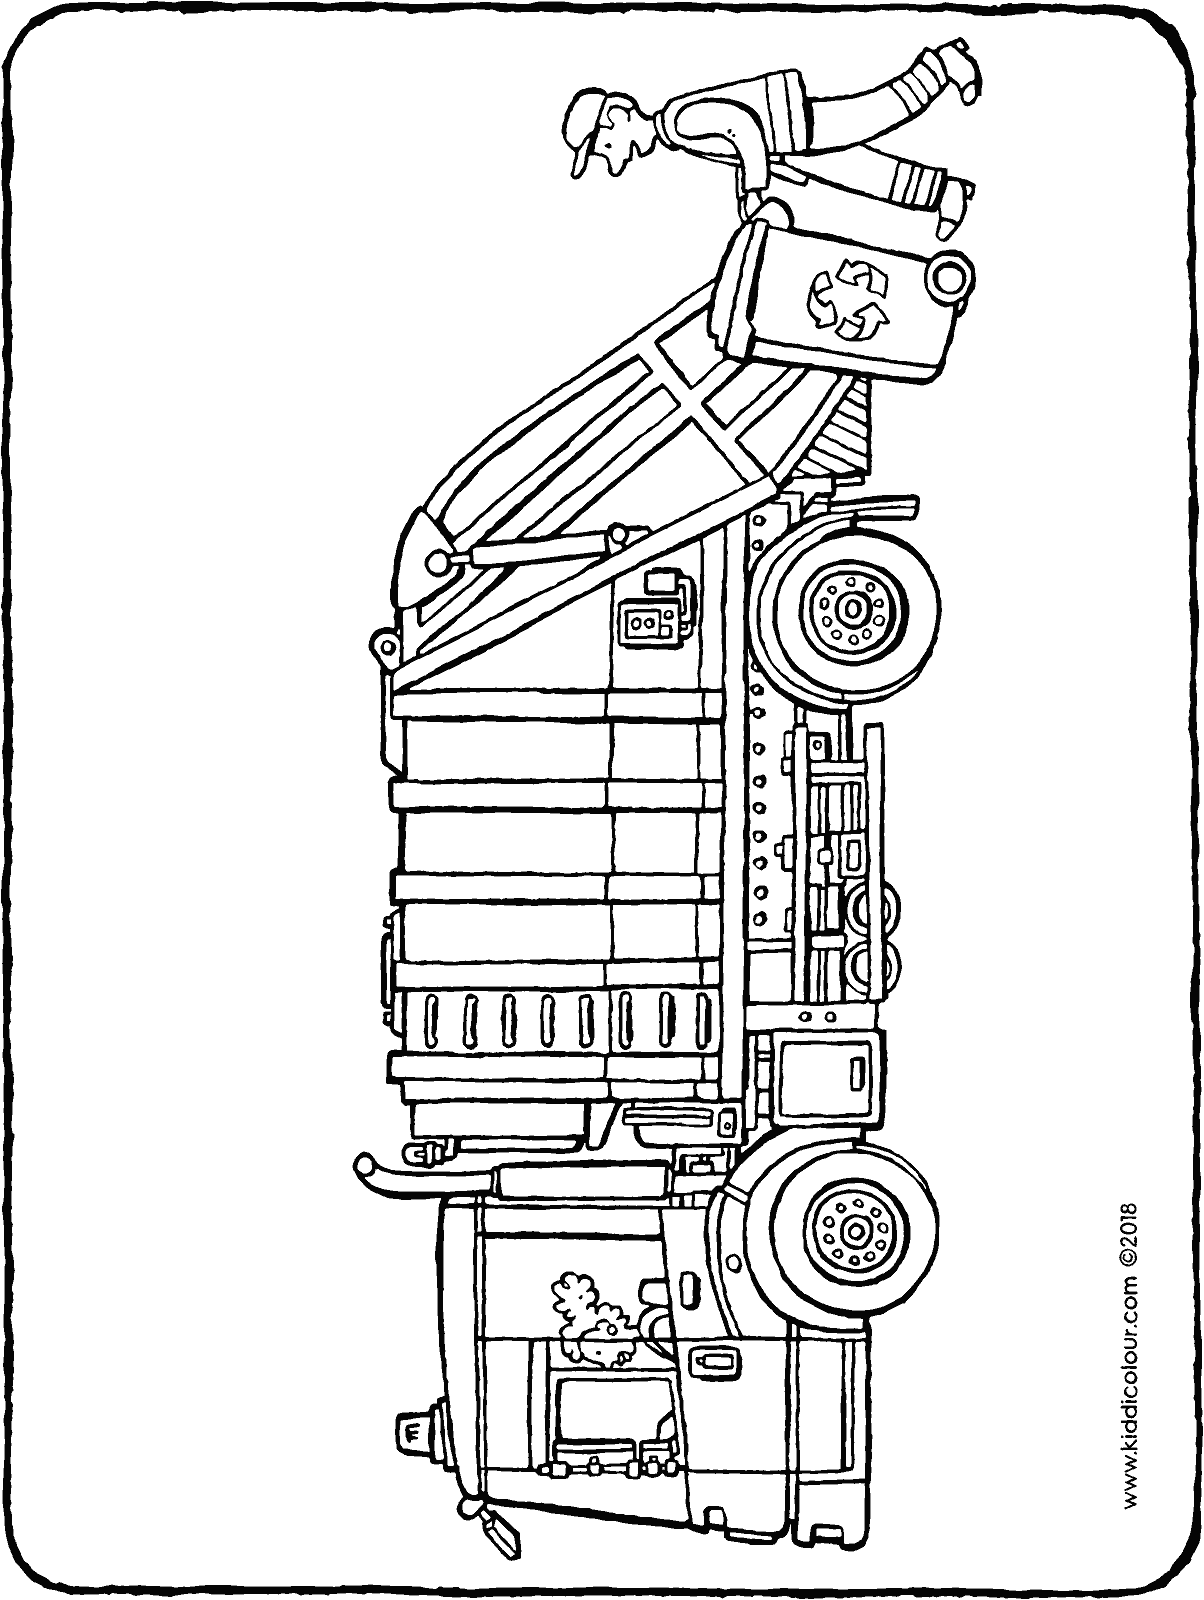 bin lorry colouring page drawing picture 01H